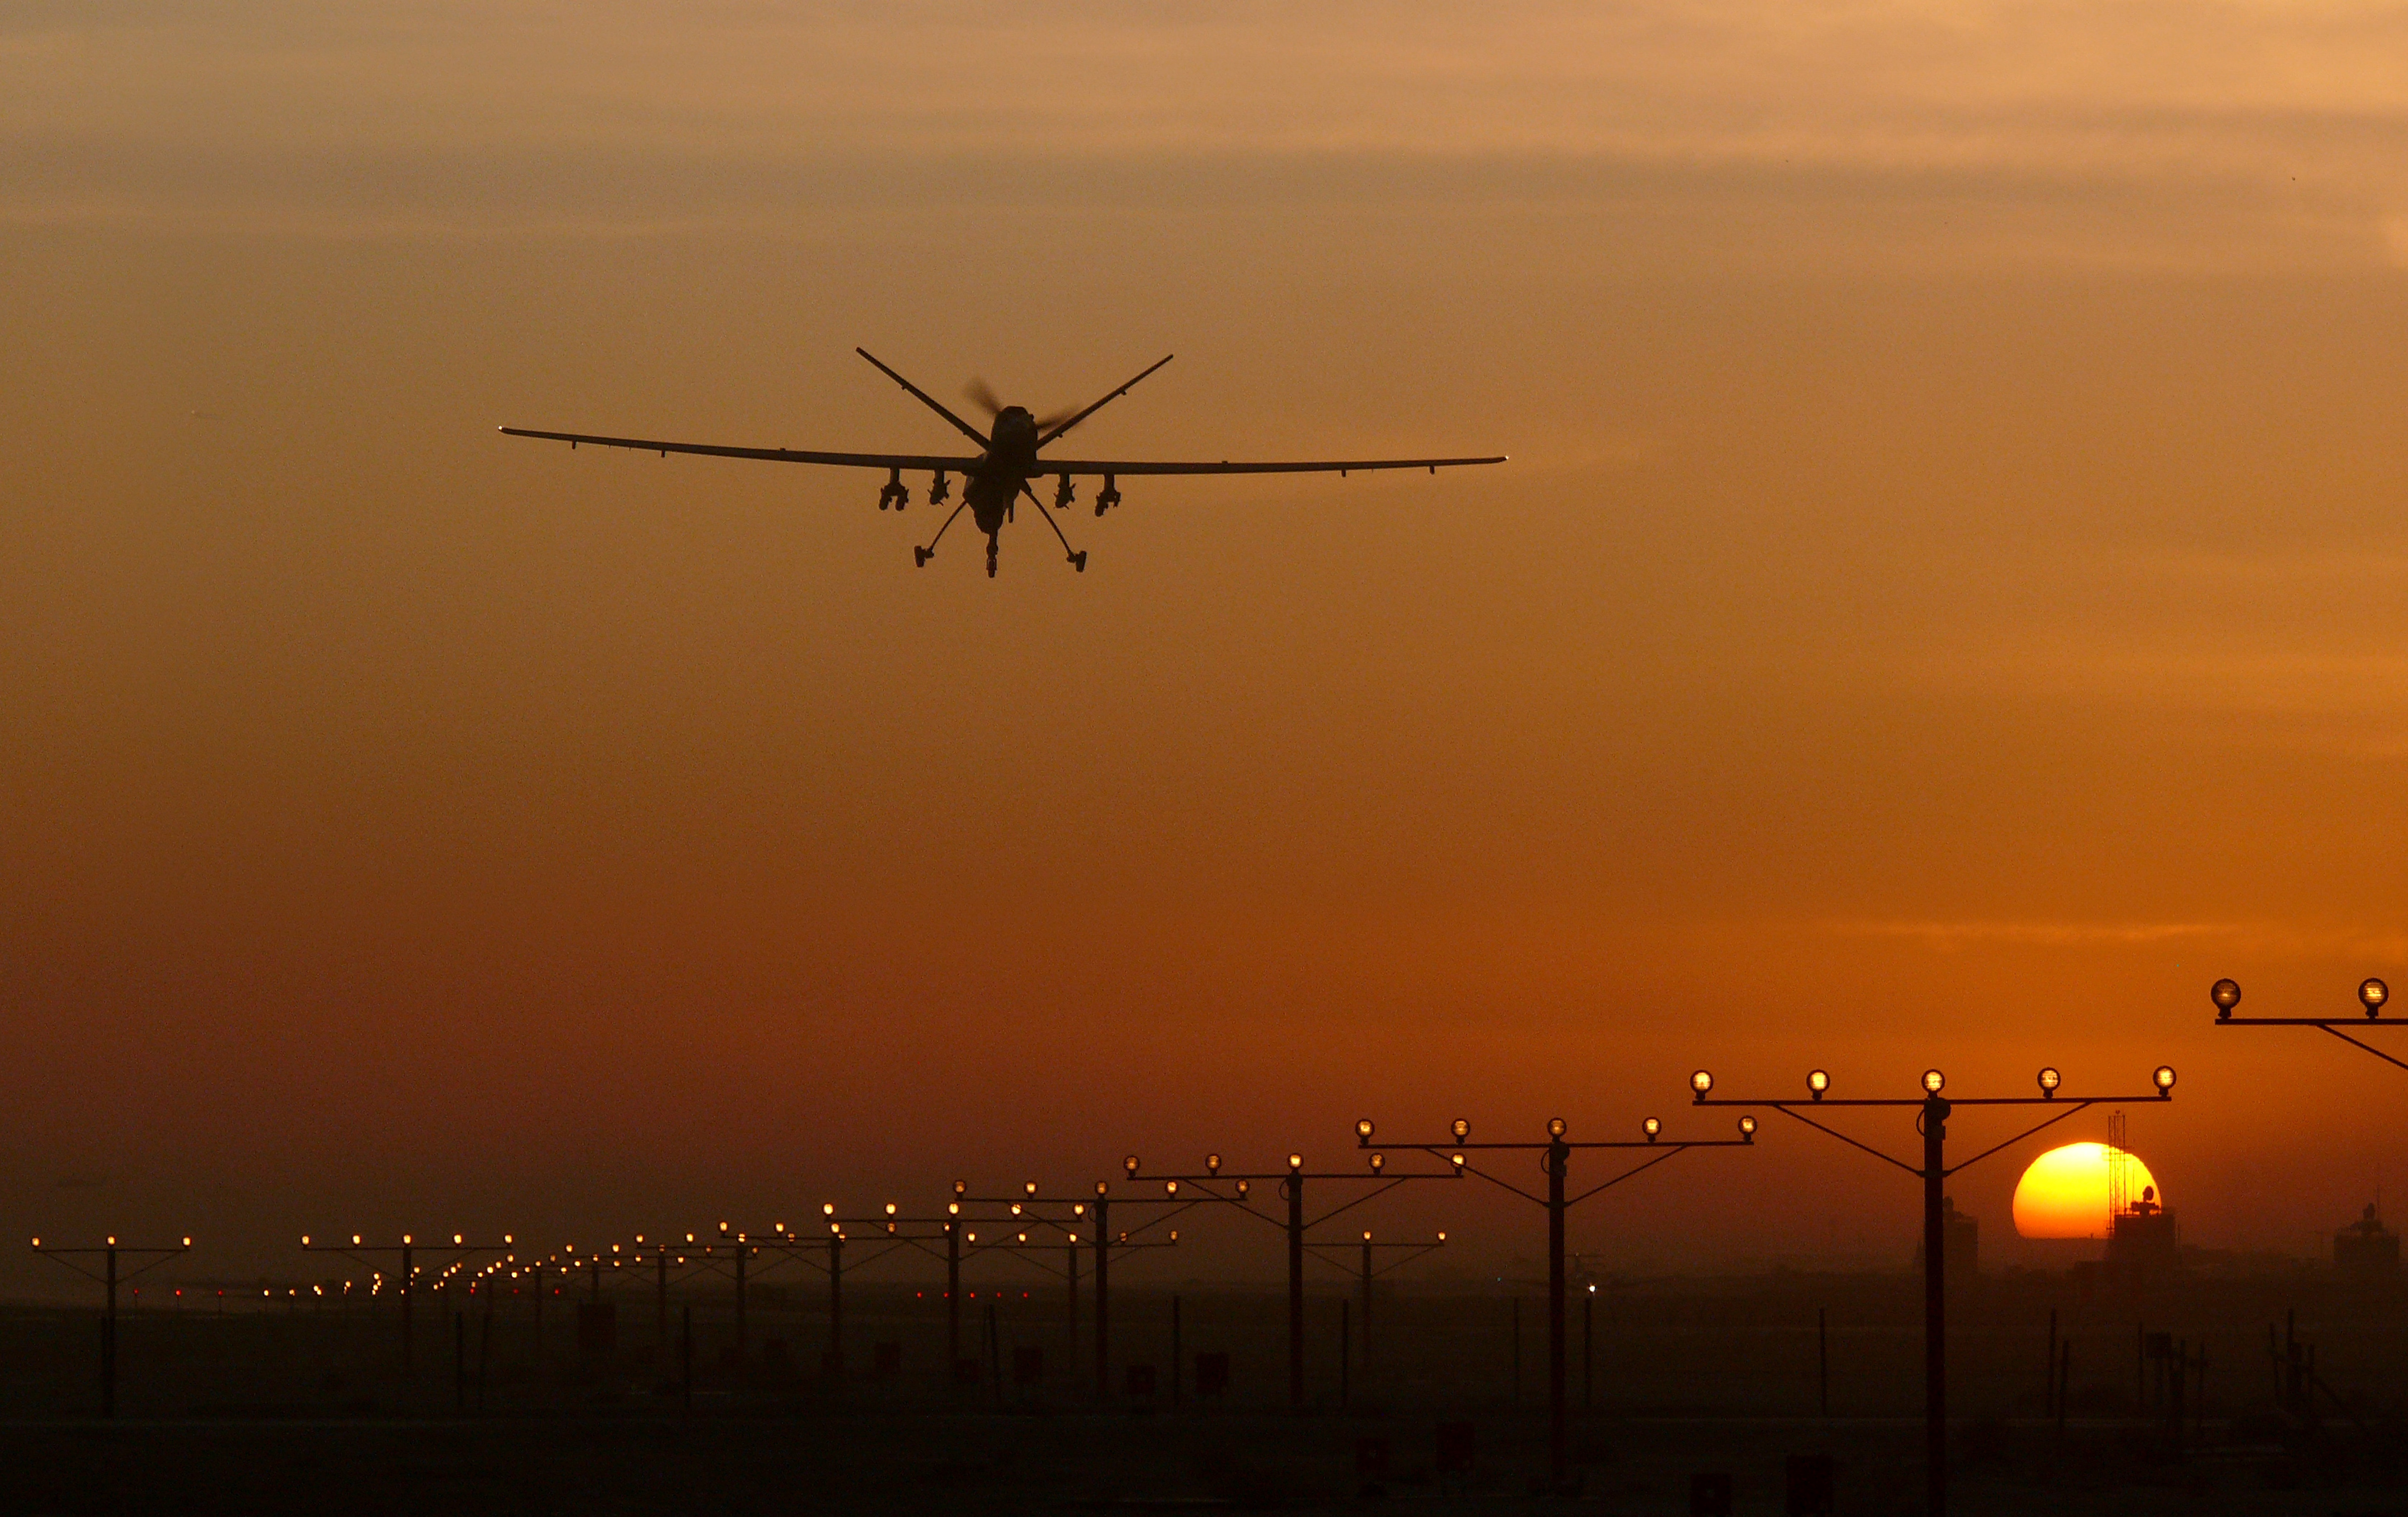 An image that was part of the RAF Photographers Photographic Competition 2005.